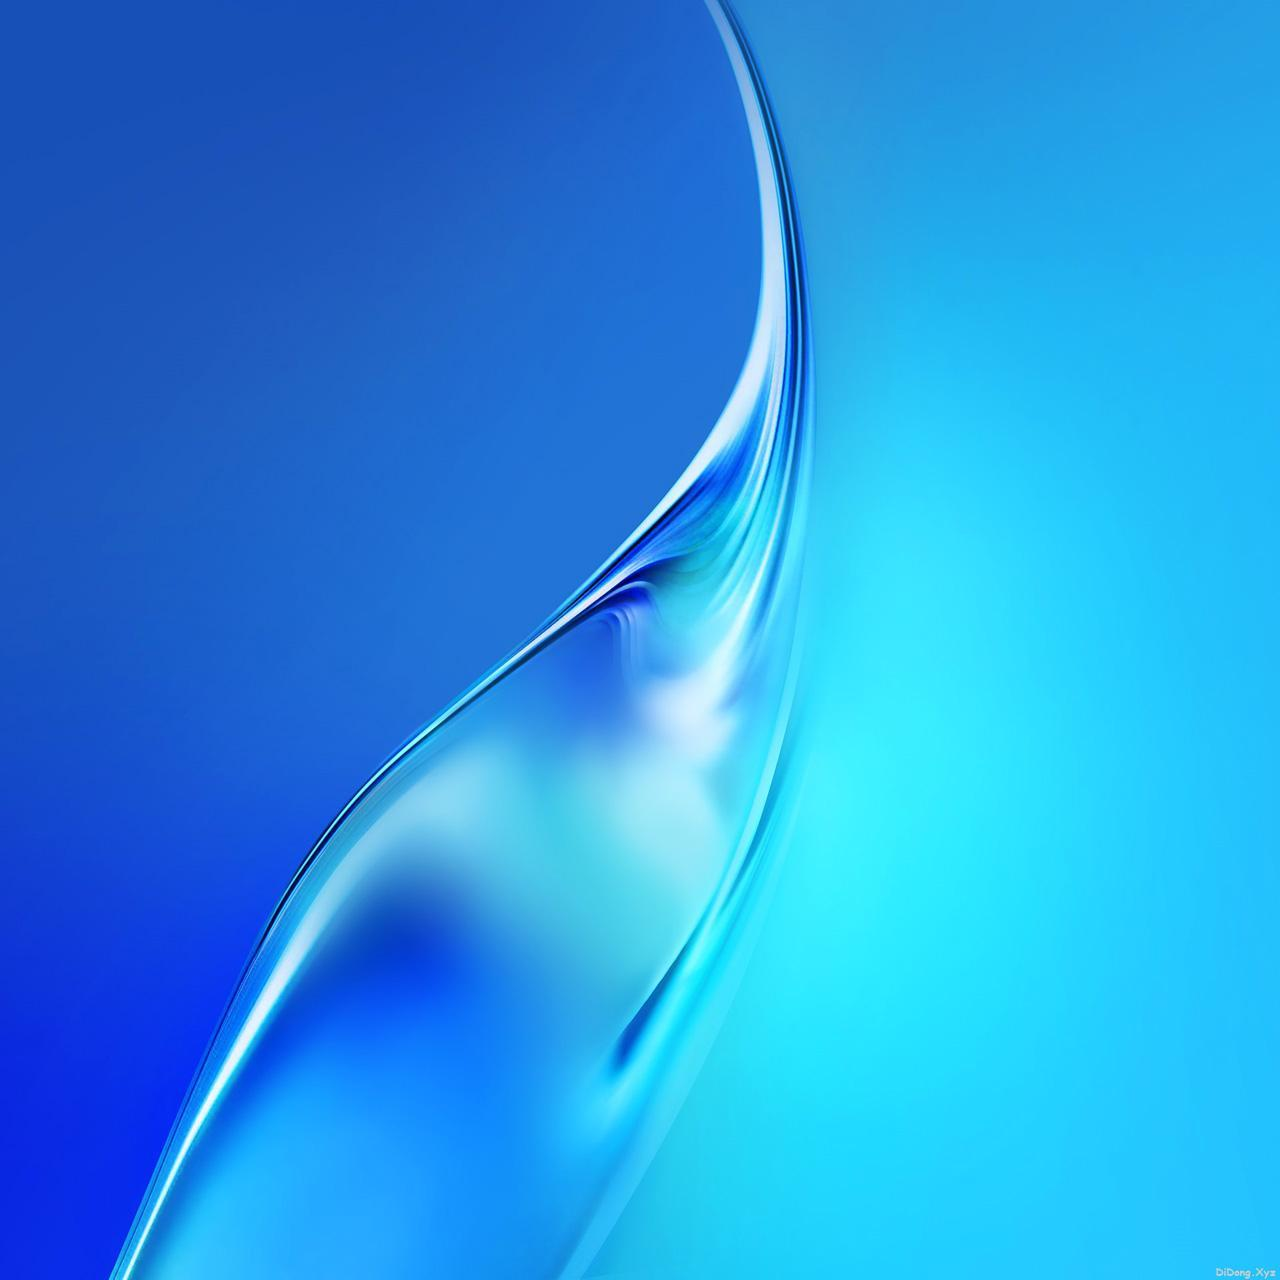 J7 J5 J3 J2 J1 Samsung Wallpapers For Galaxy Phone For Android Apk Download